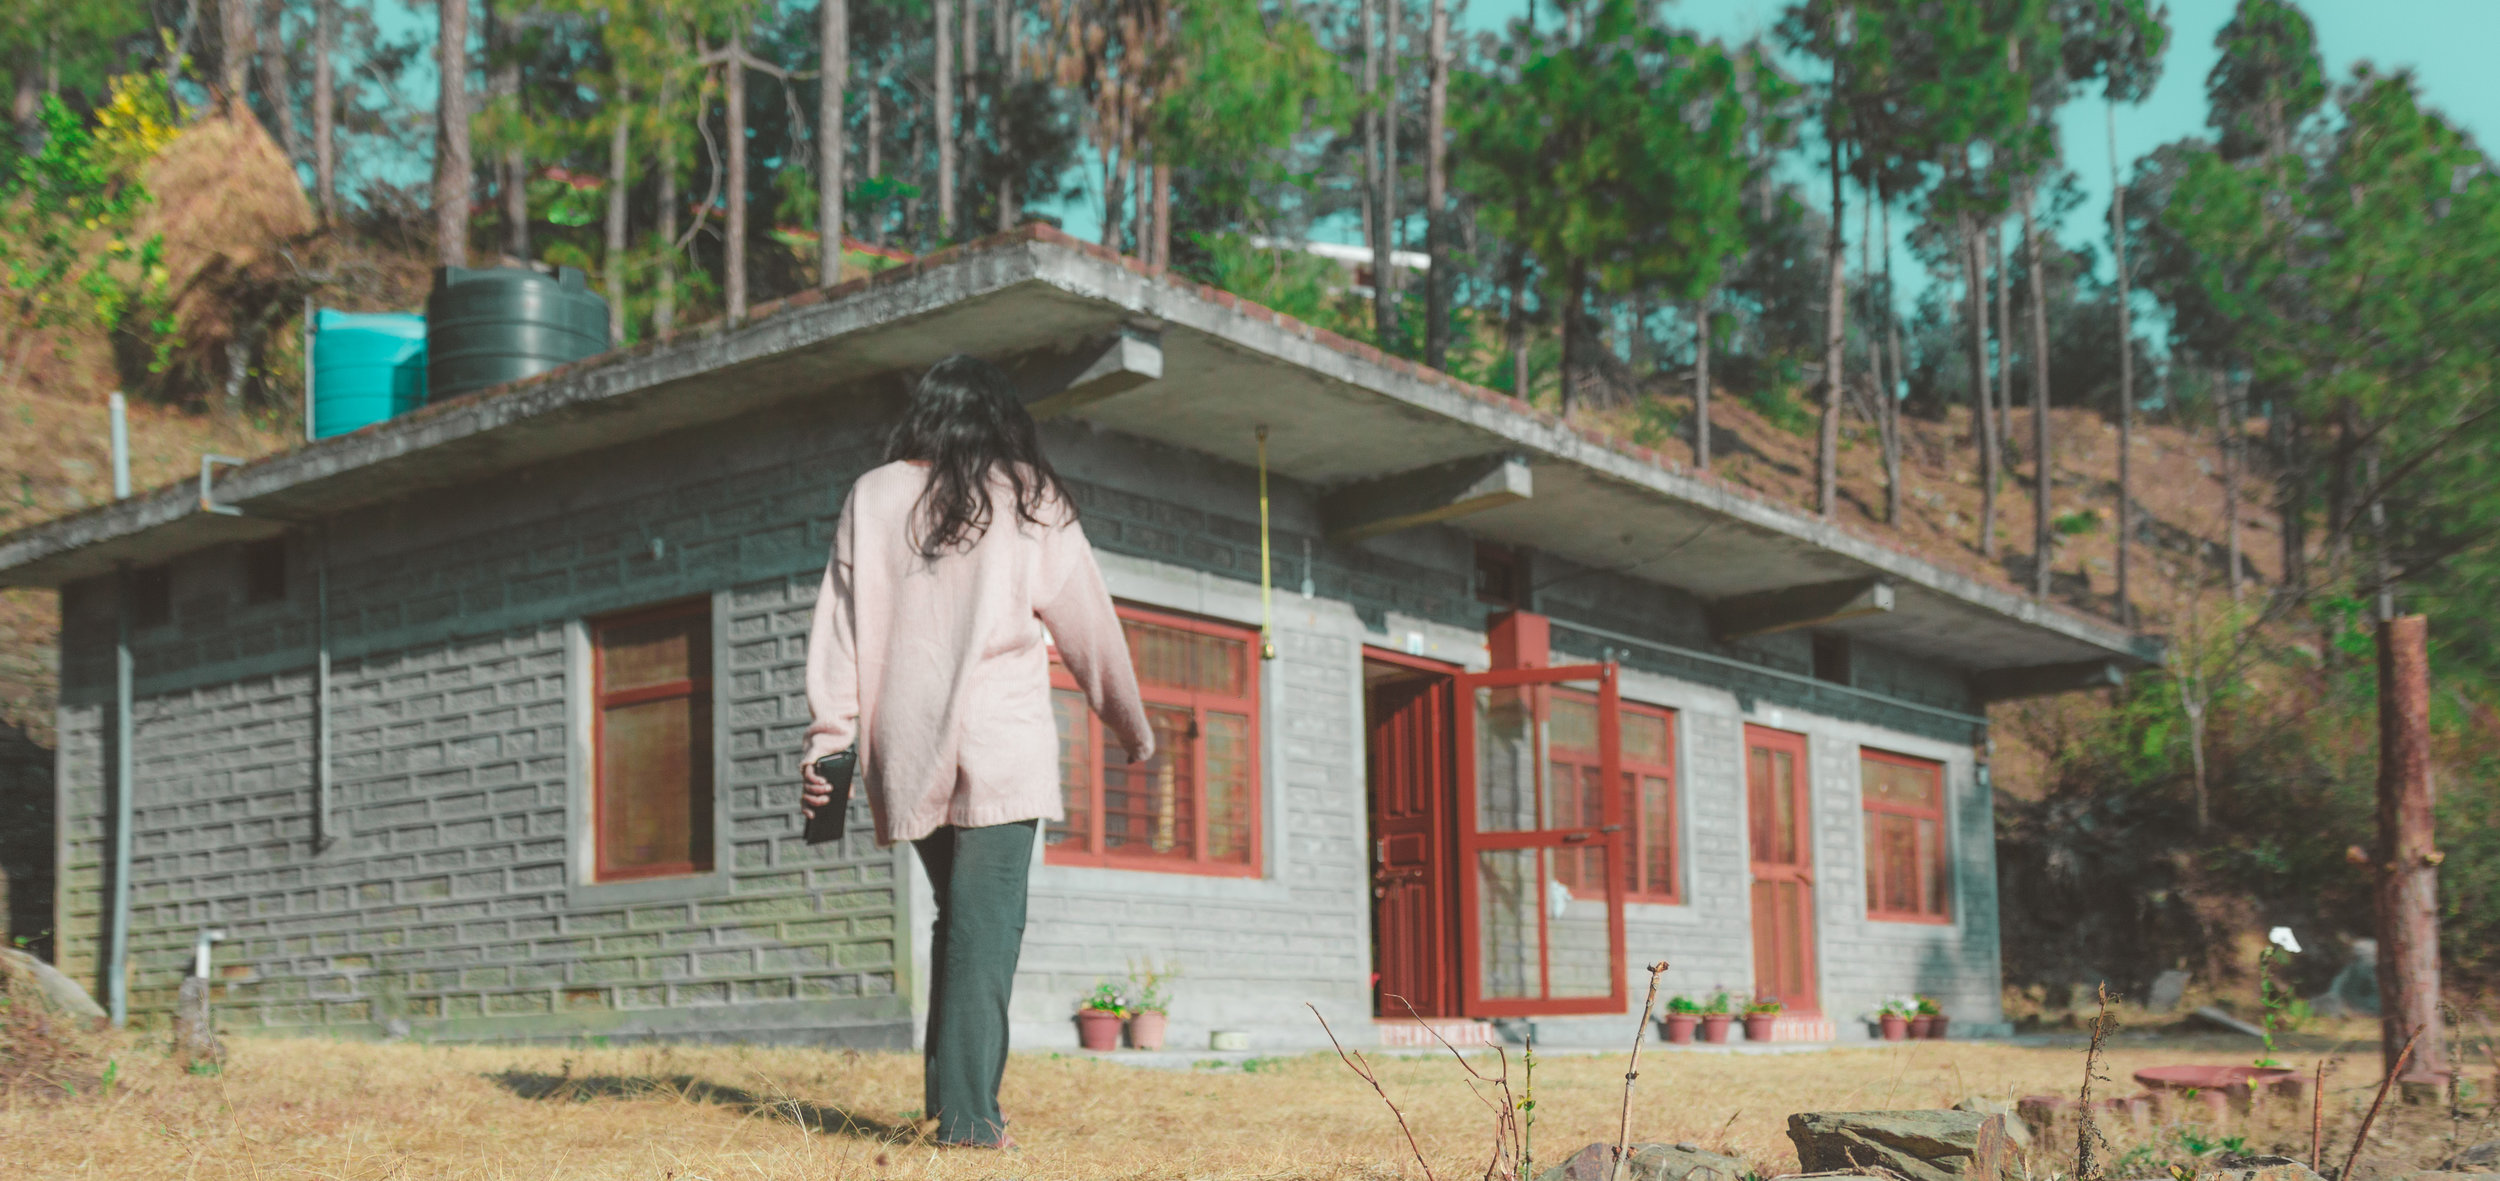 Nitya's ex-home in Papersali, Almora. We were lucky to stay there.